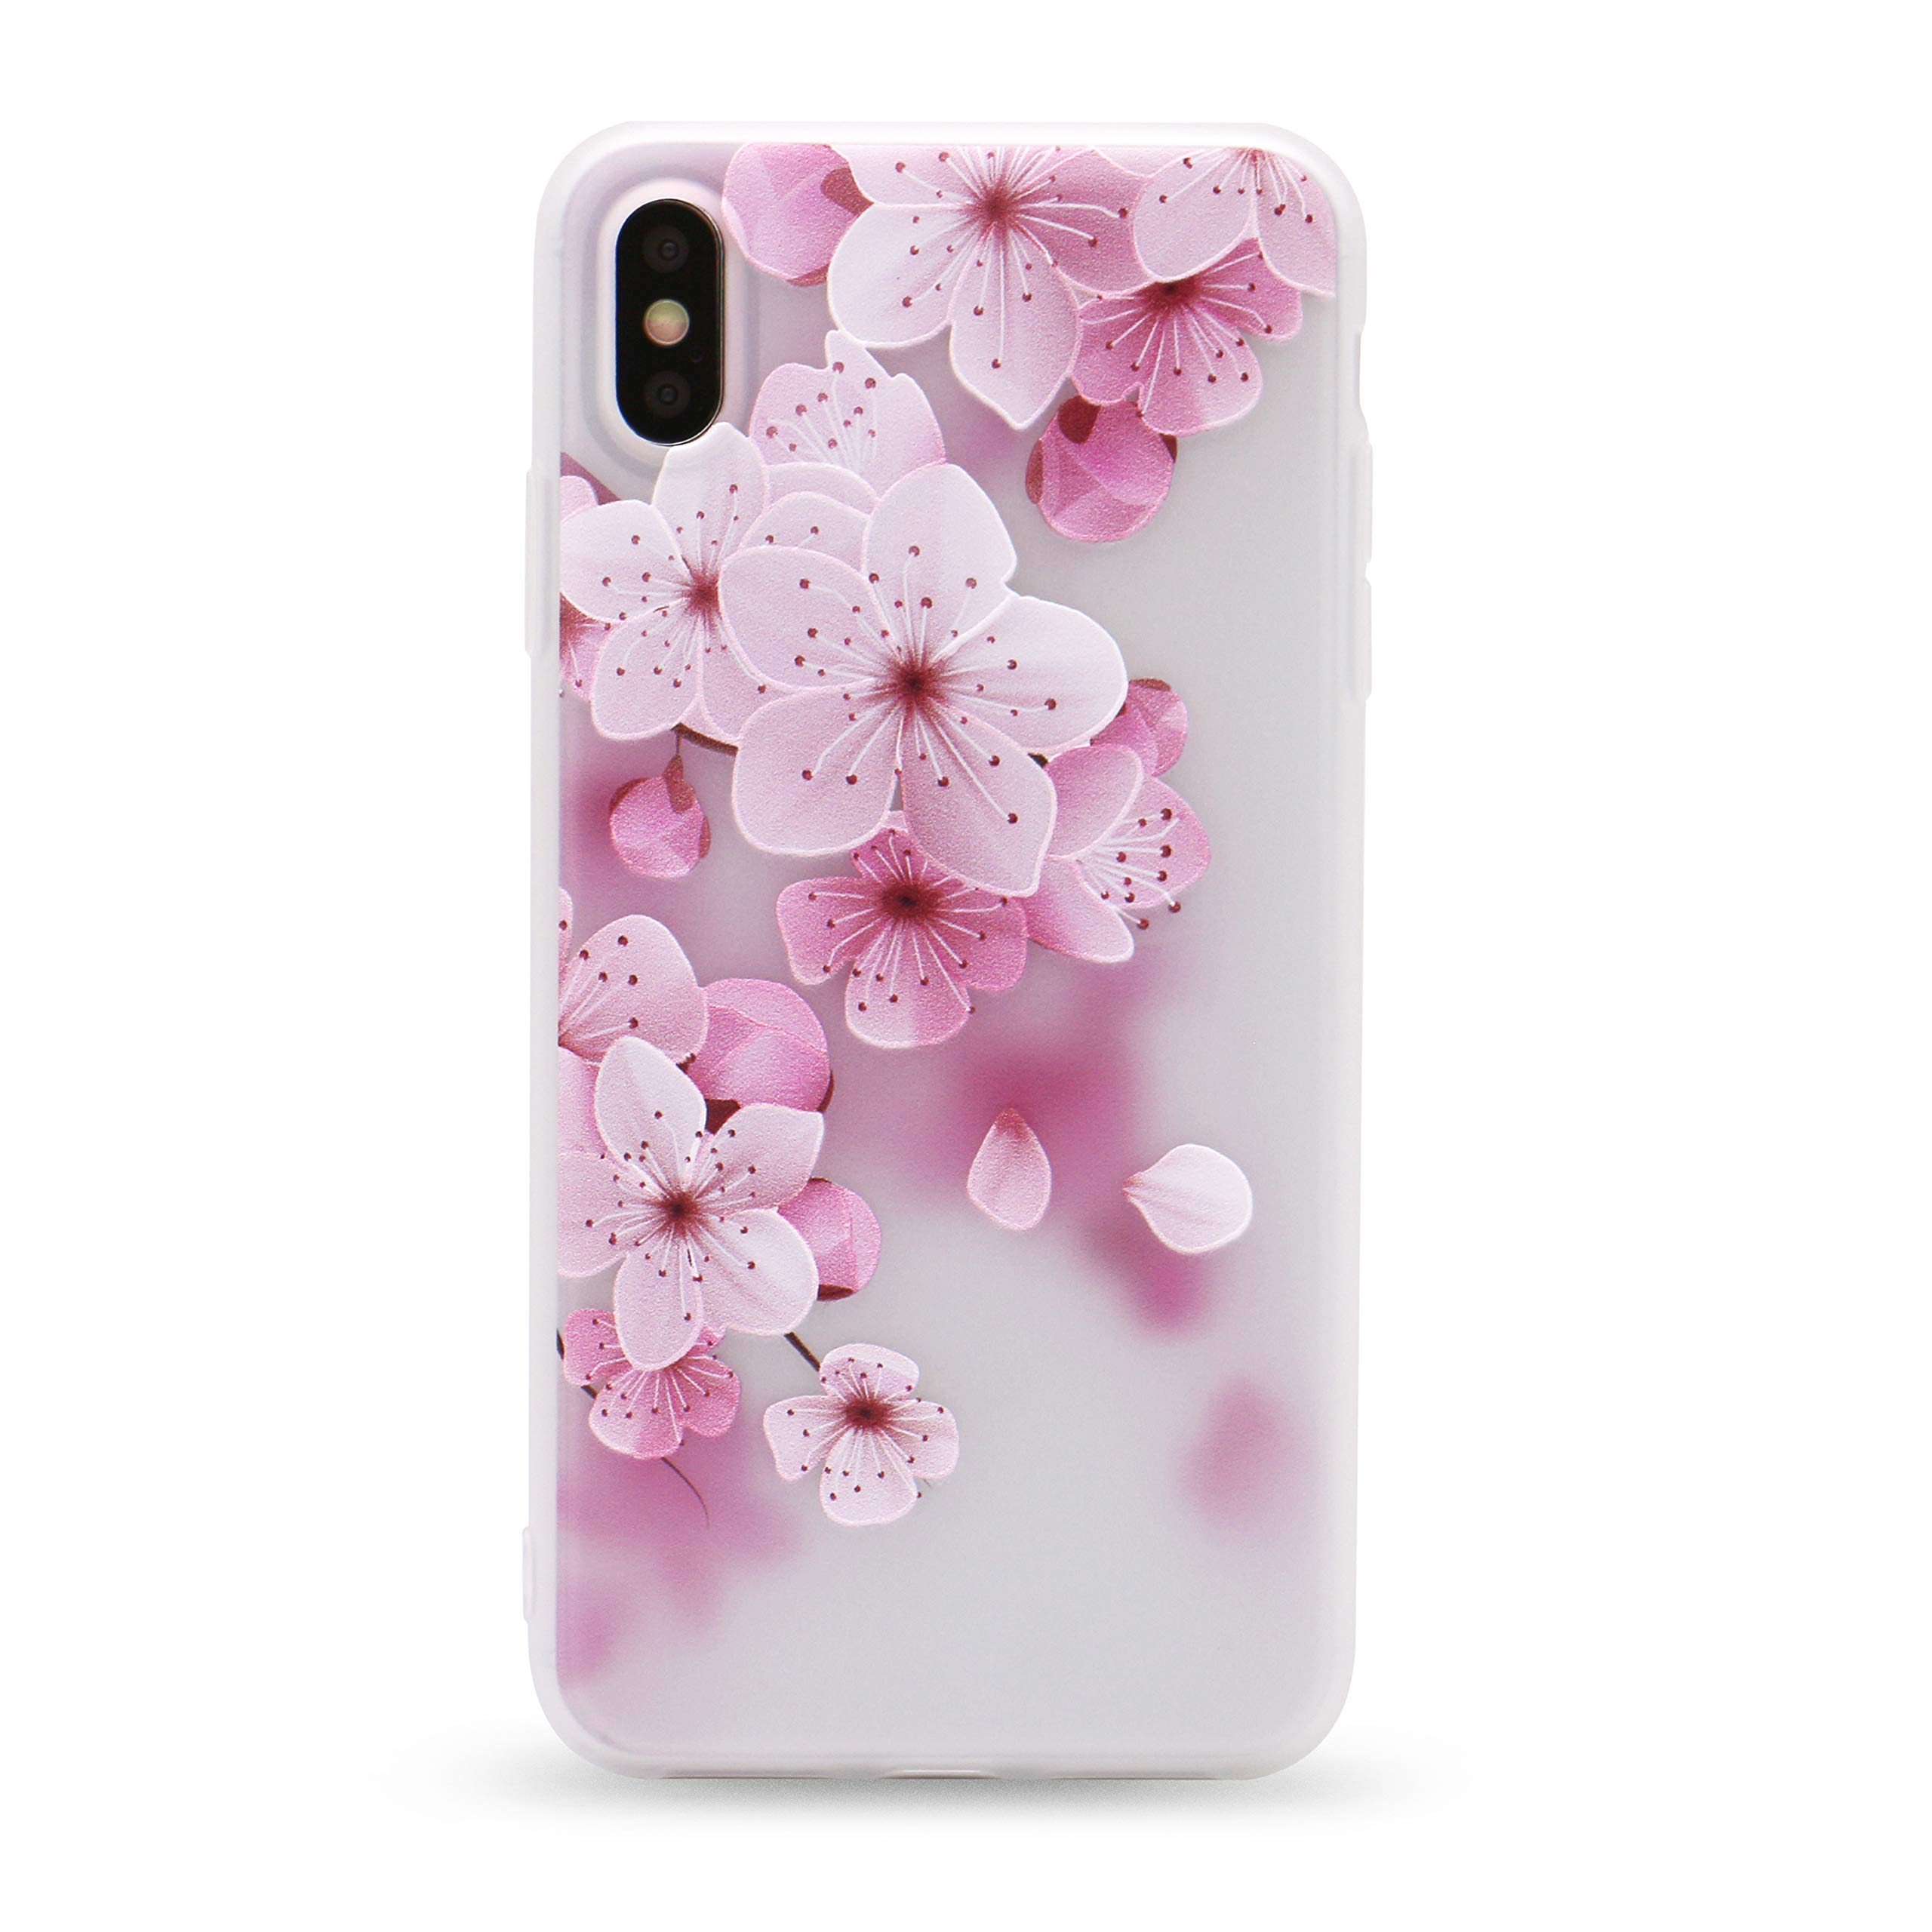 IMIFUN iPhone Xs Max Case 3D Relief Flower Silicon Phone Case for XS Max Rose Floral iPhone max Cases Soft TPU Cover(5619, XSMAX)